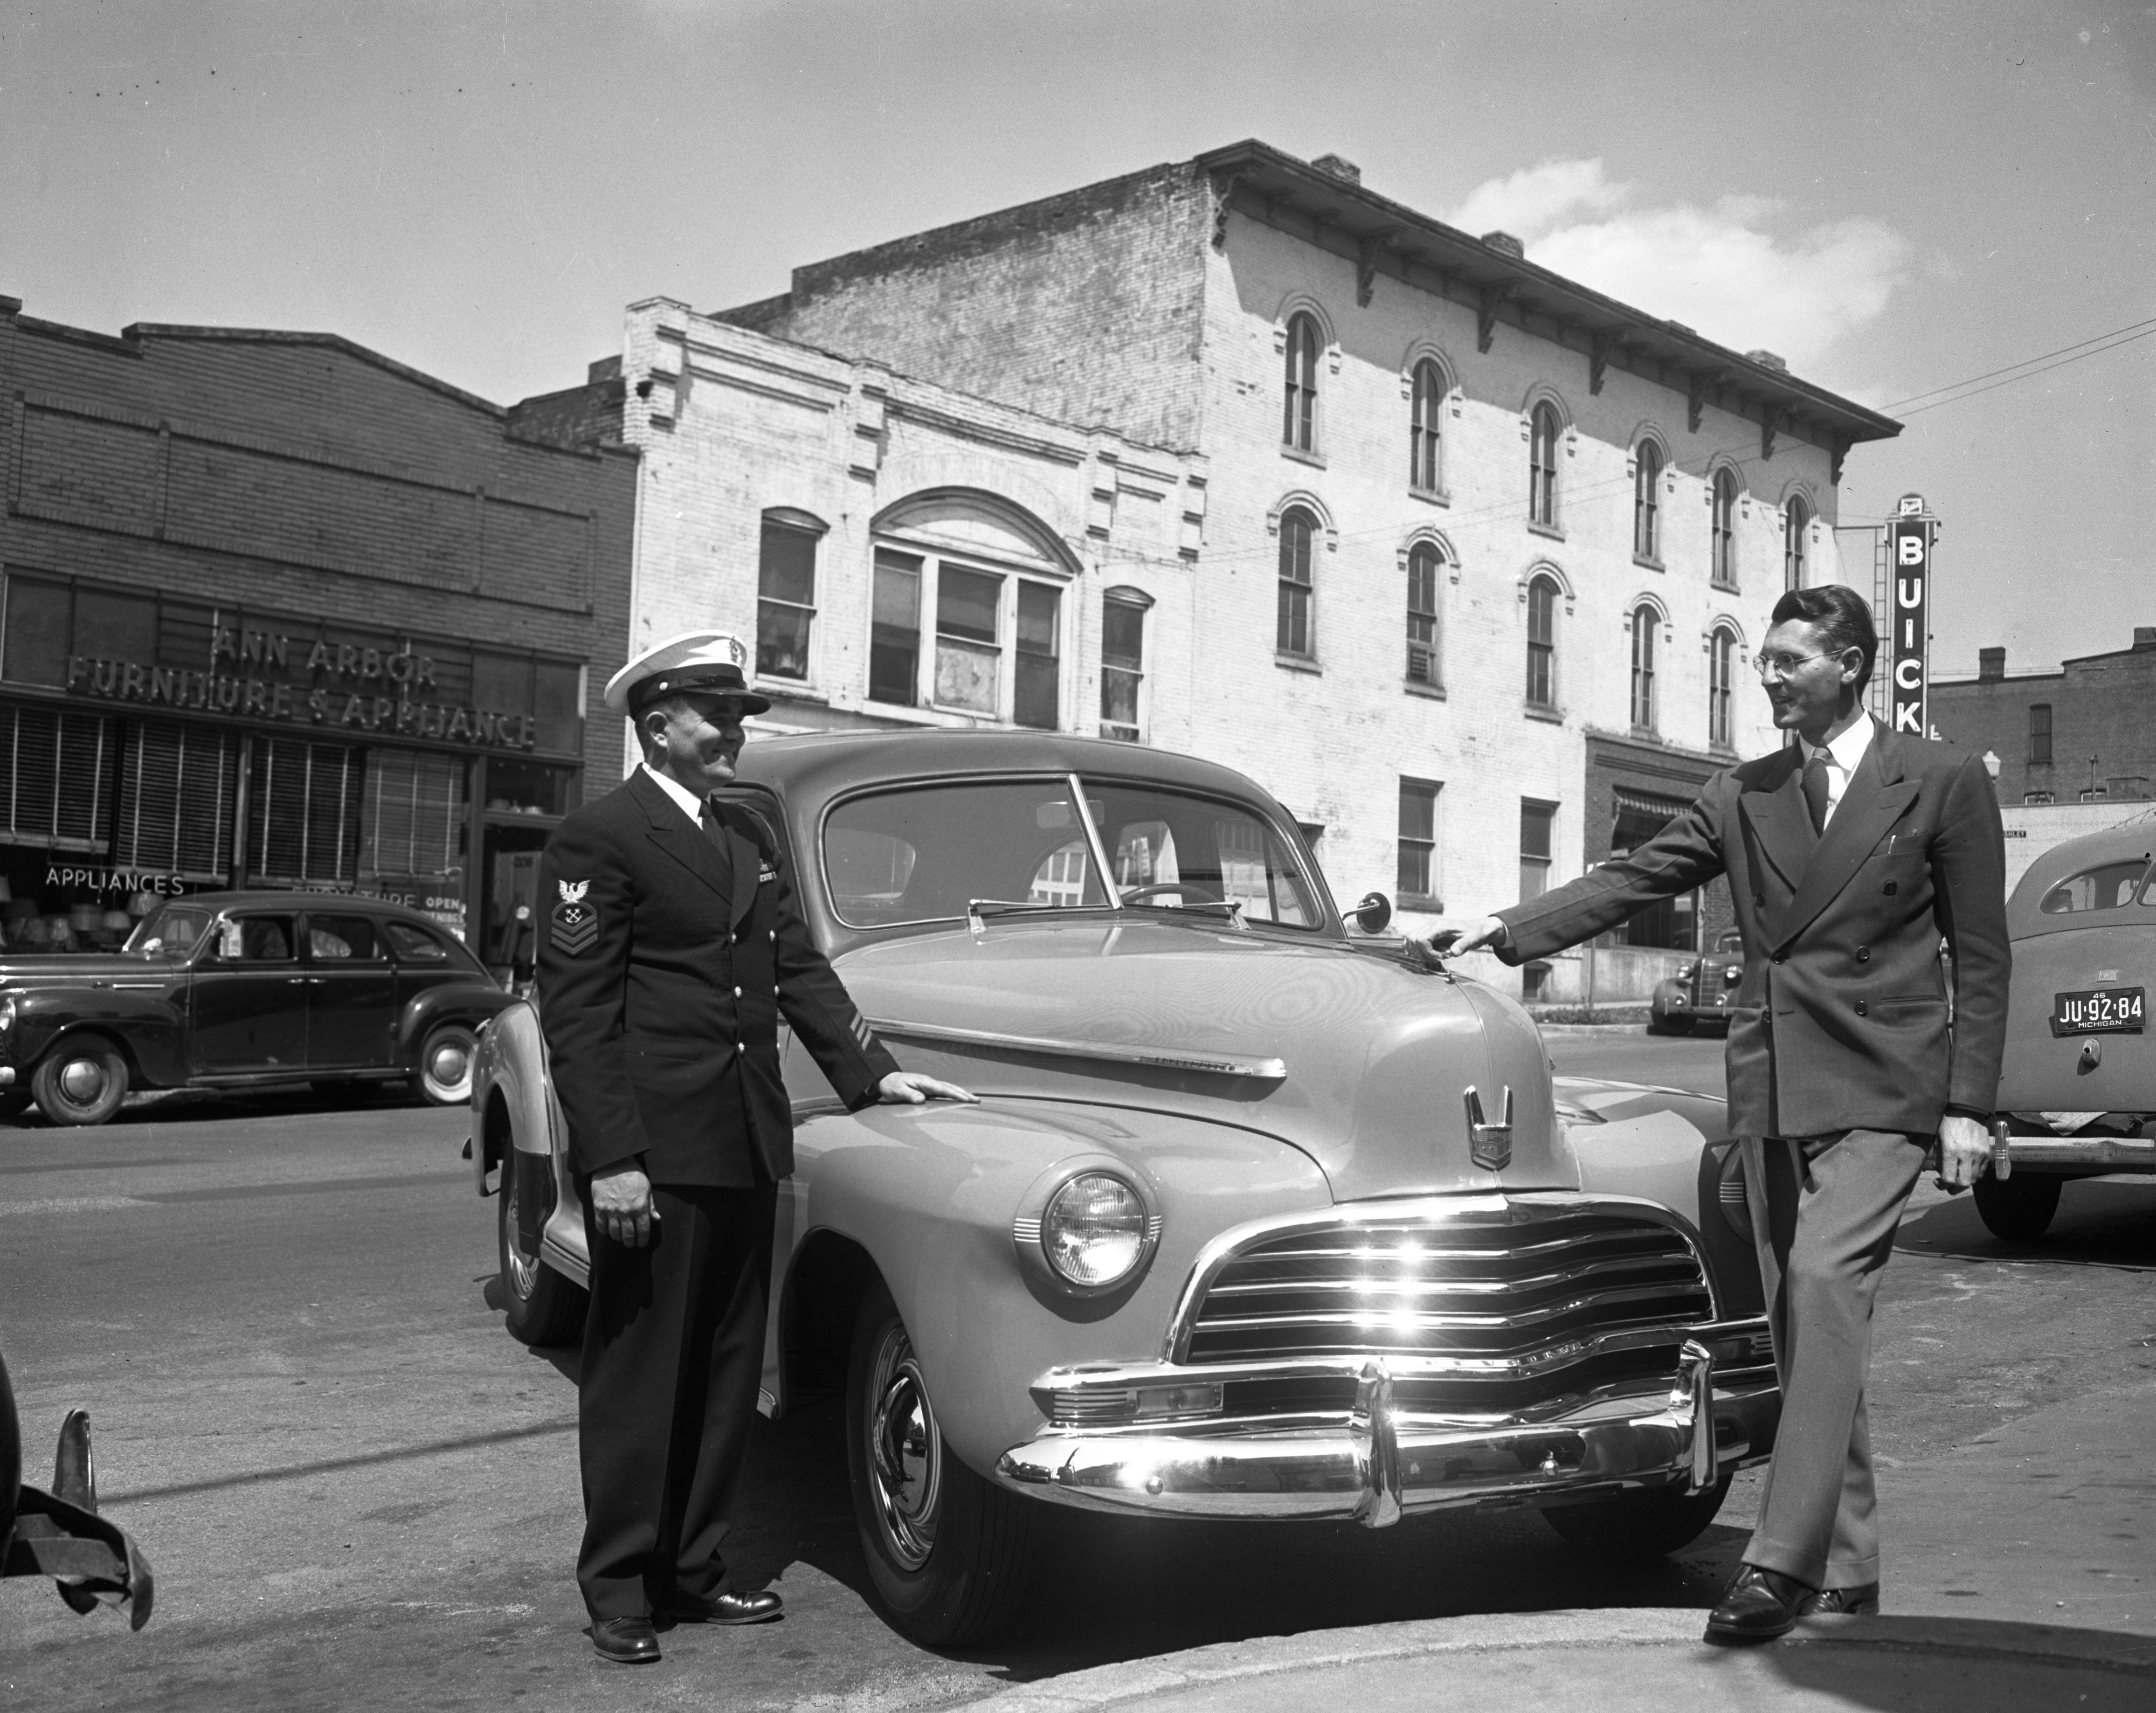 Veteran gets first Chevrolet delivered in Ann Arbor, circa 1946 image